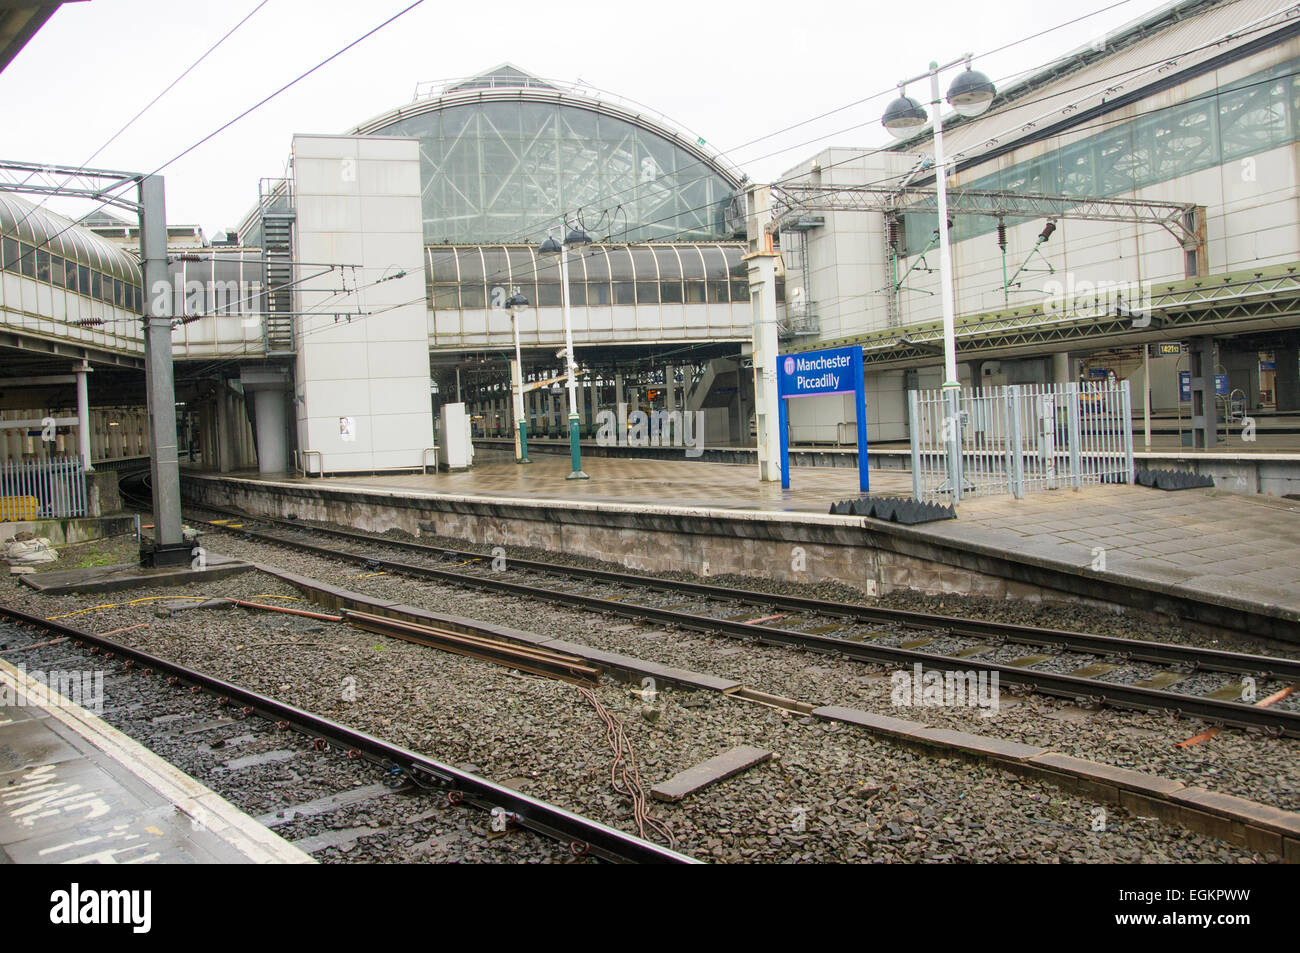 manchester picadilly station, Image from platform 13/14 - Stock Image